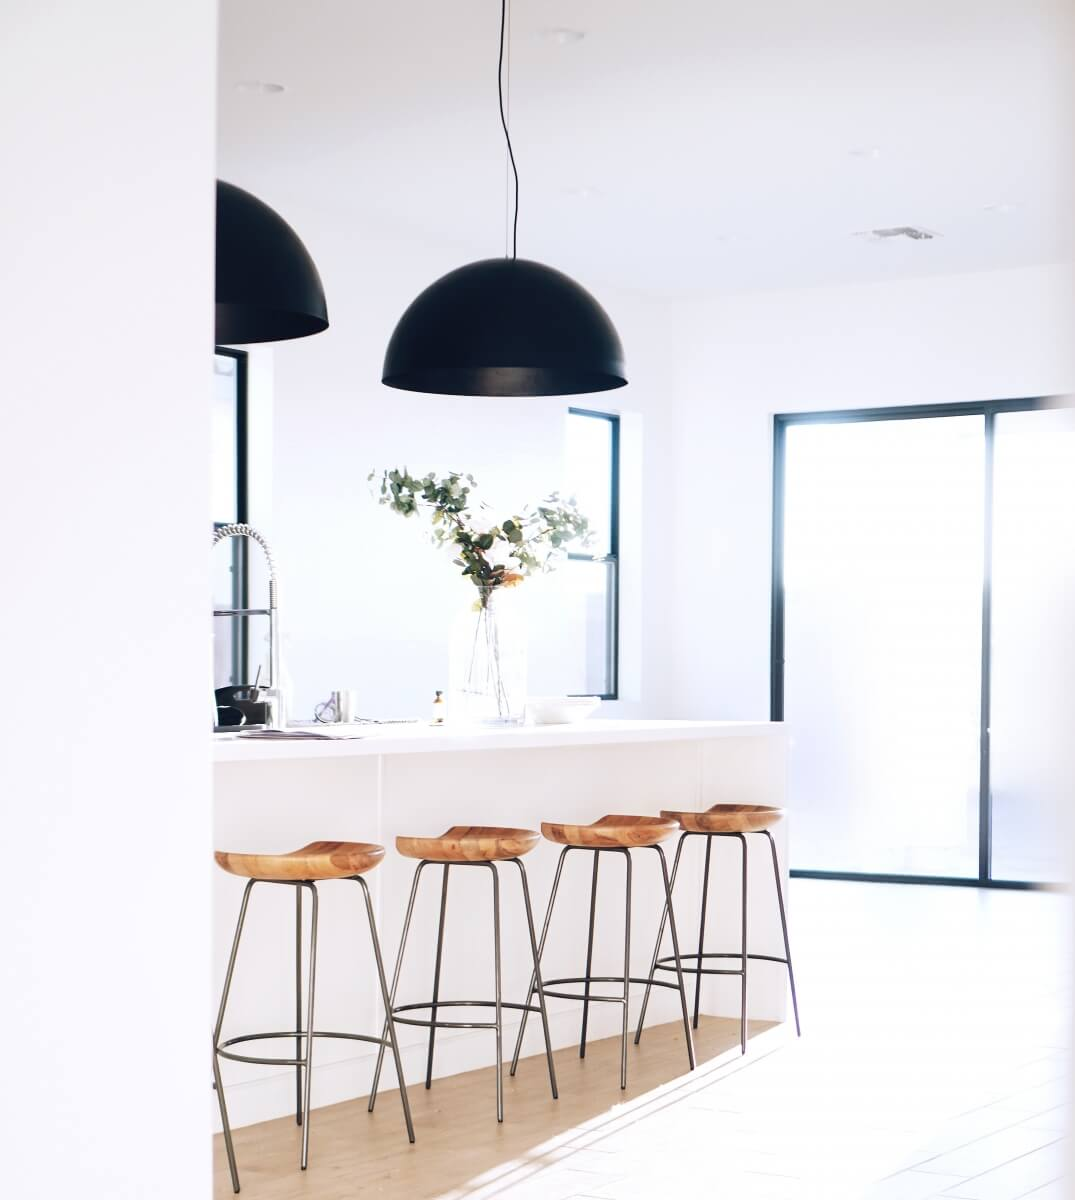 An example of a kitchen design trend. Two overzied black light shades on pendant lights over a kitchen island. Kitchen design trends to consider.